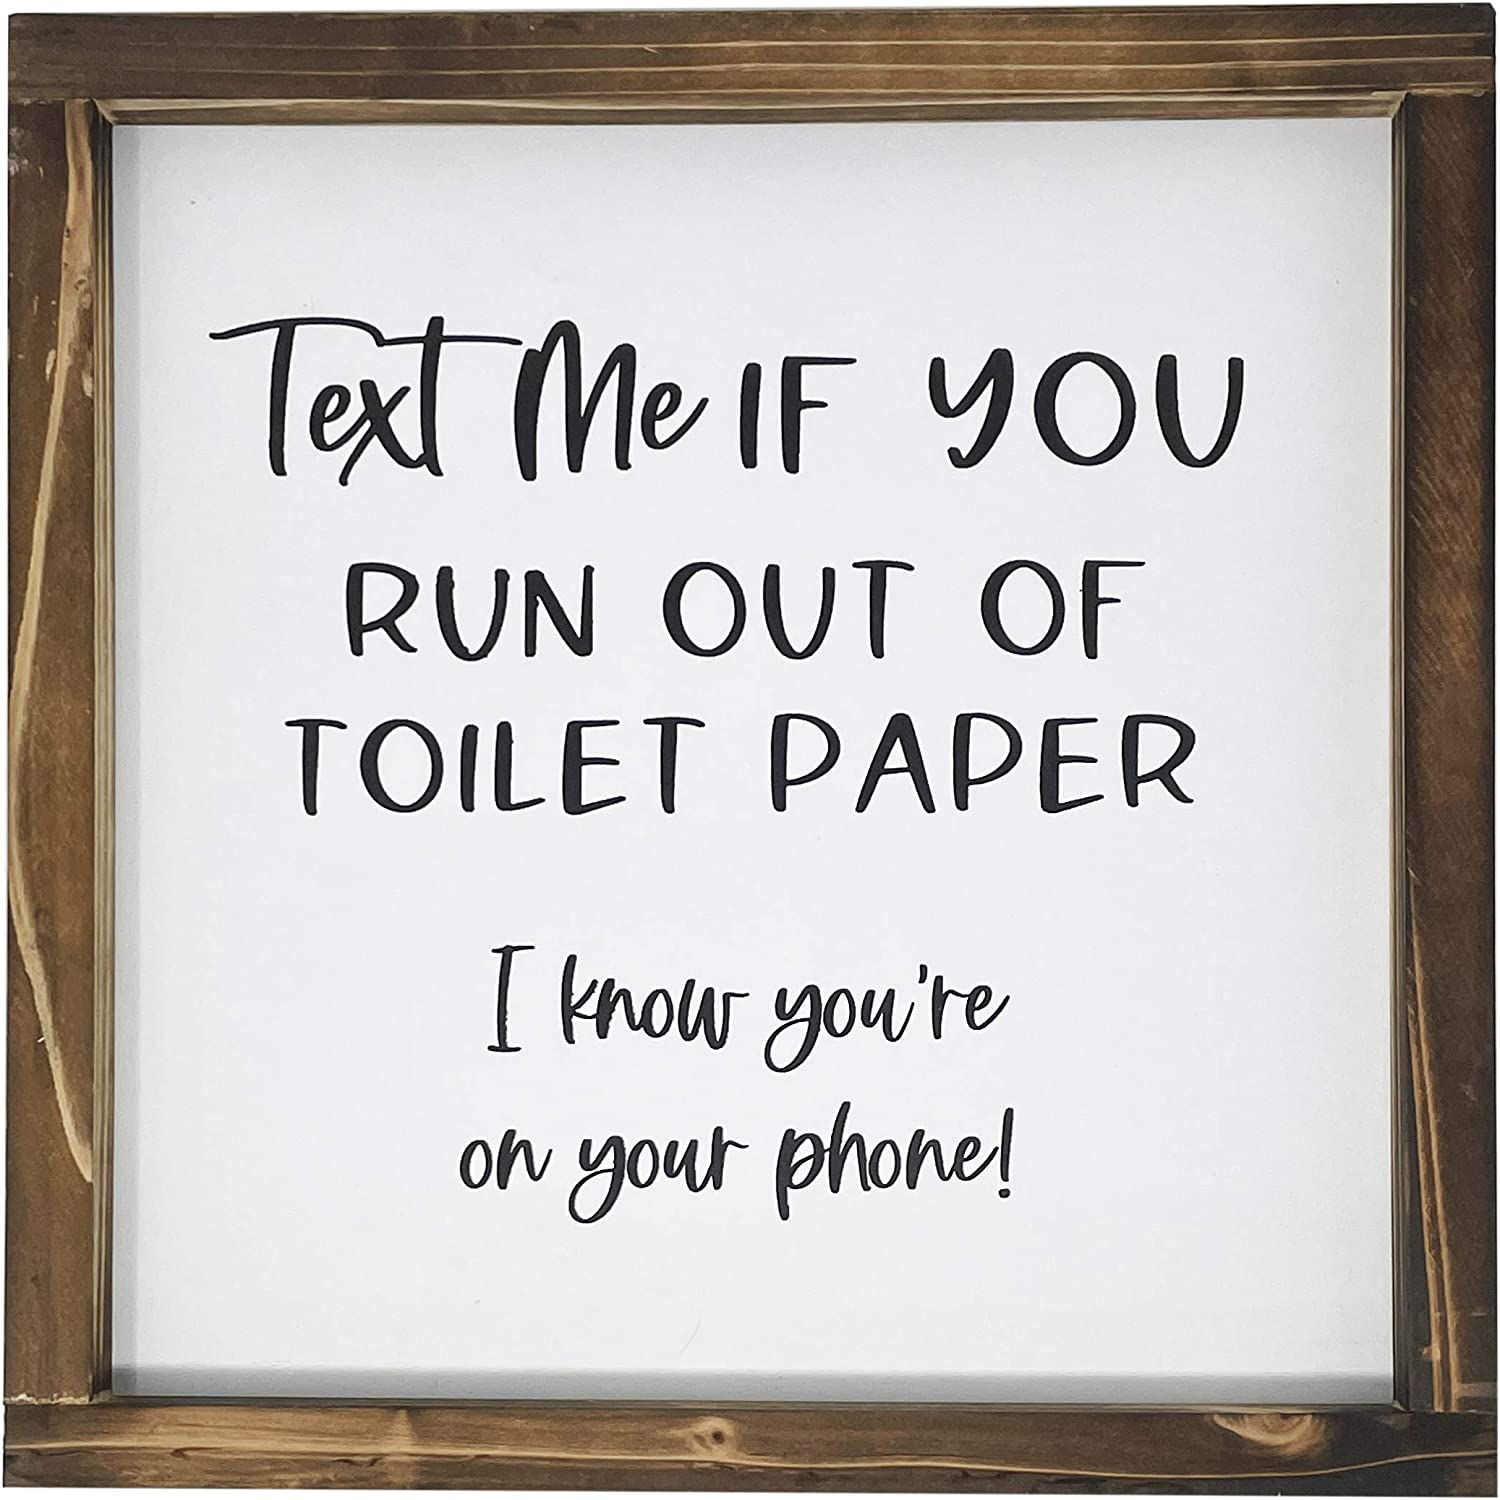 Text Me Sign For Bathroom-Rustic Farmhouse Decor Sign, Funny Guest Bathroom Wall Art, Modern Restroom Sign For Wall With Funny Quotes, Cute Home Decoration, 12x12 Inch